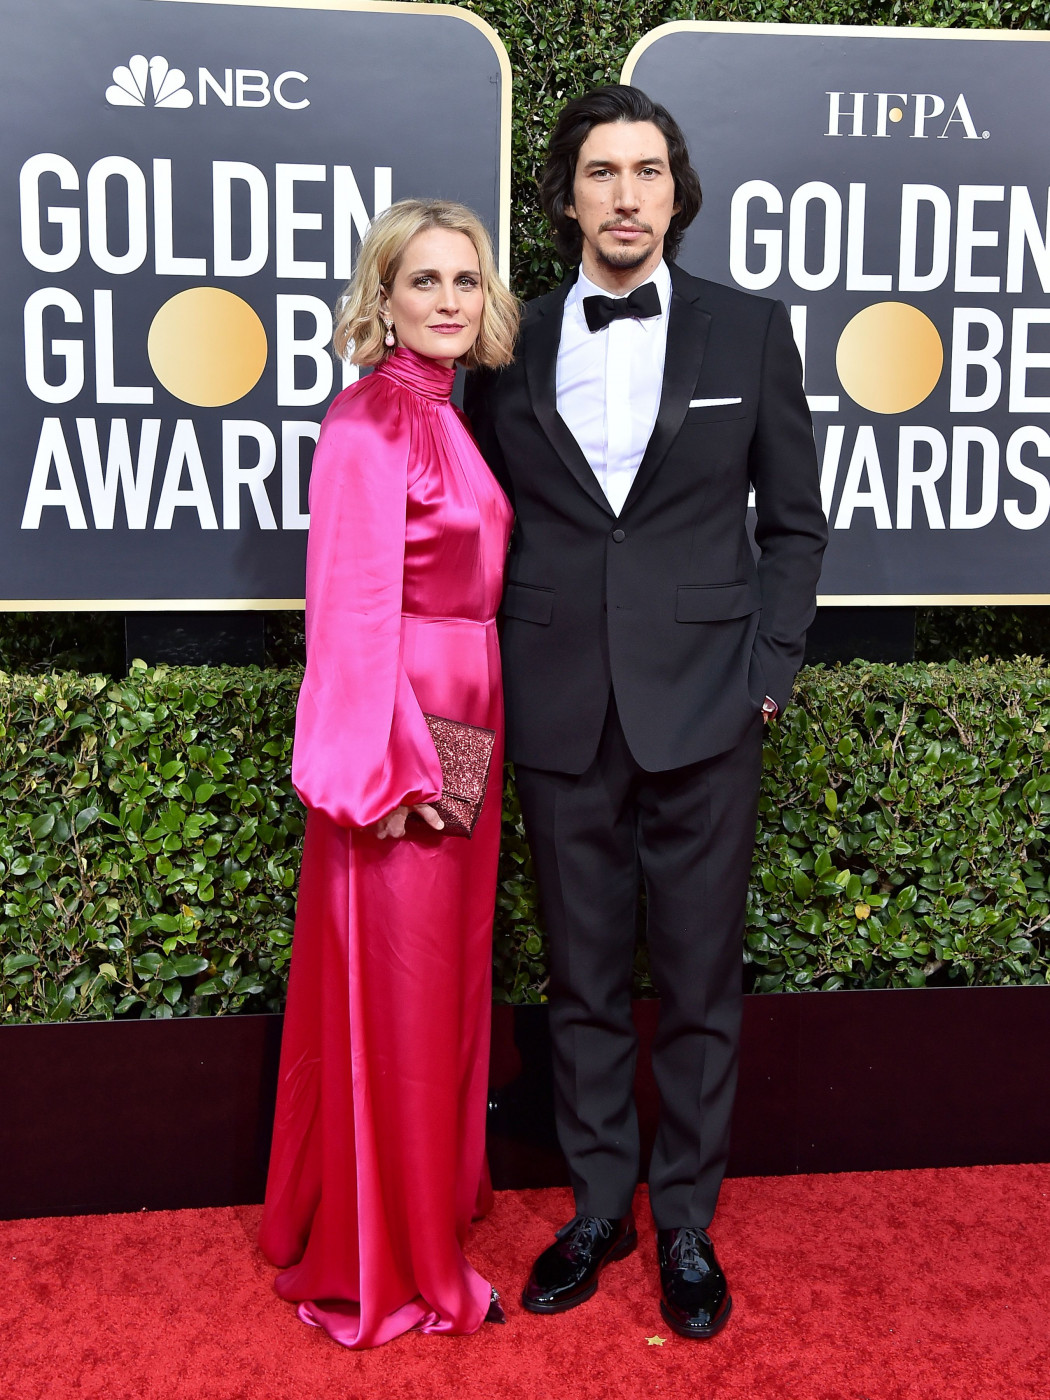 Golden Globes 2020 : les plus beaux looks du tapis rouge - 23